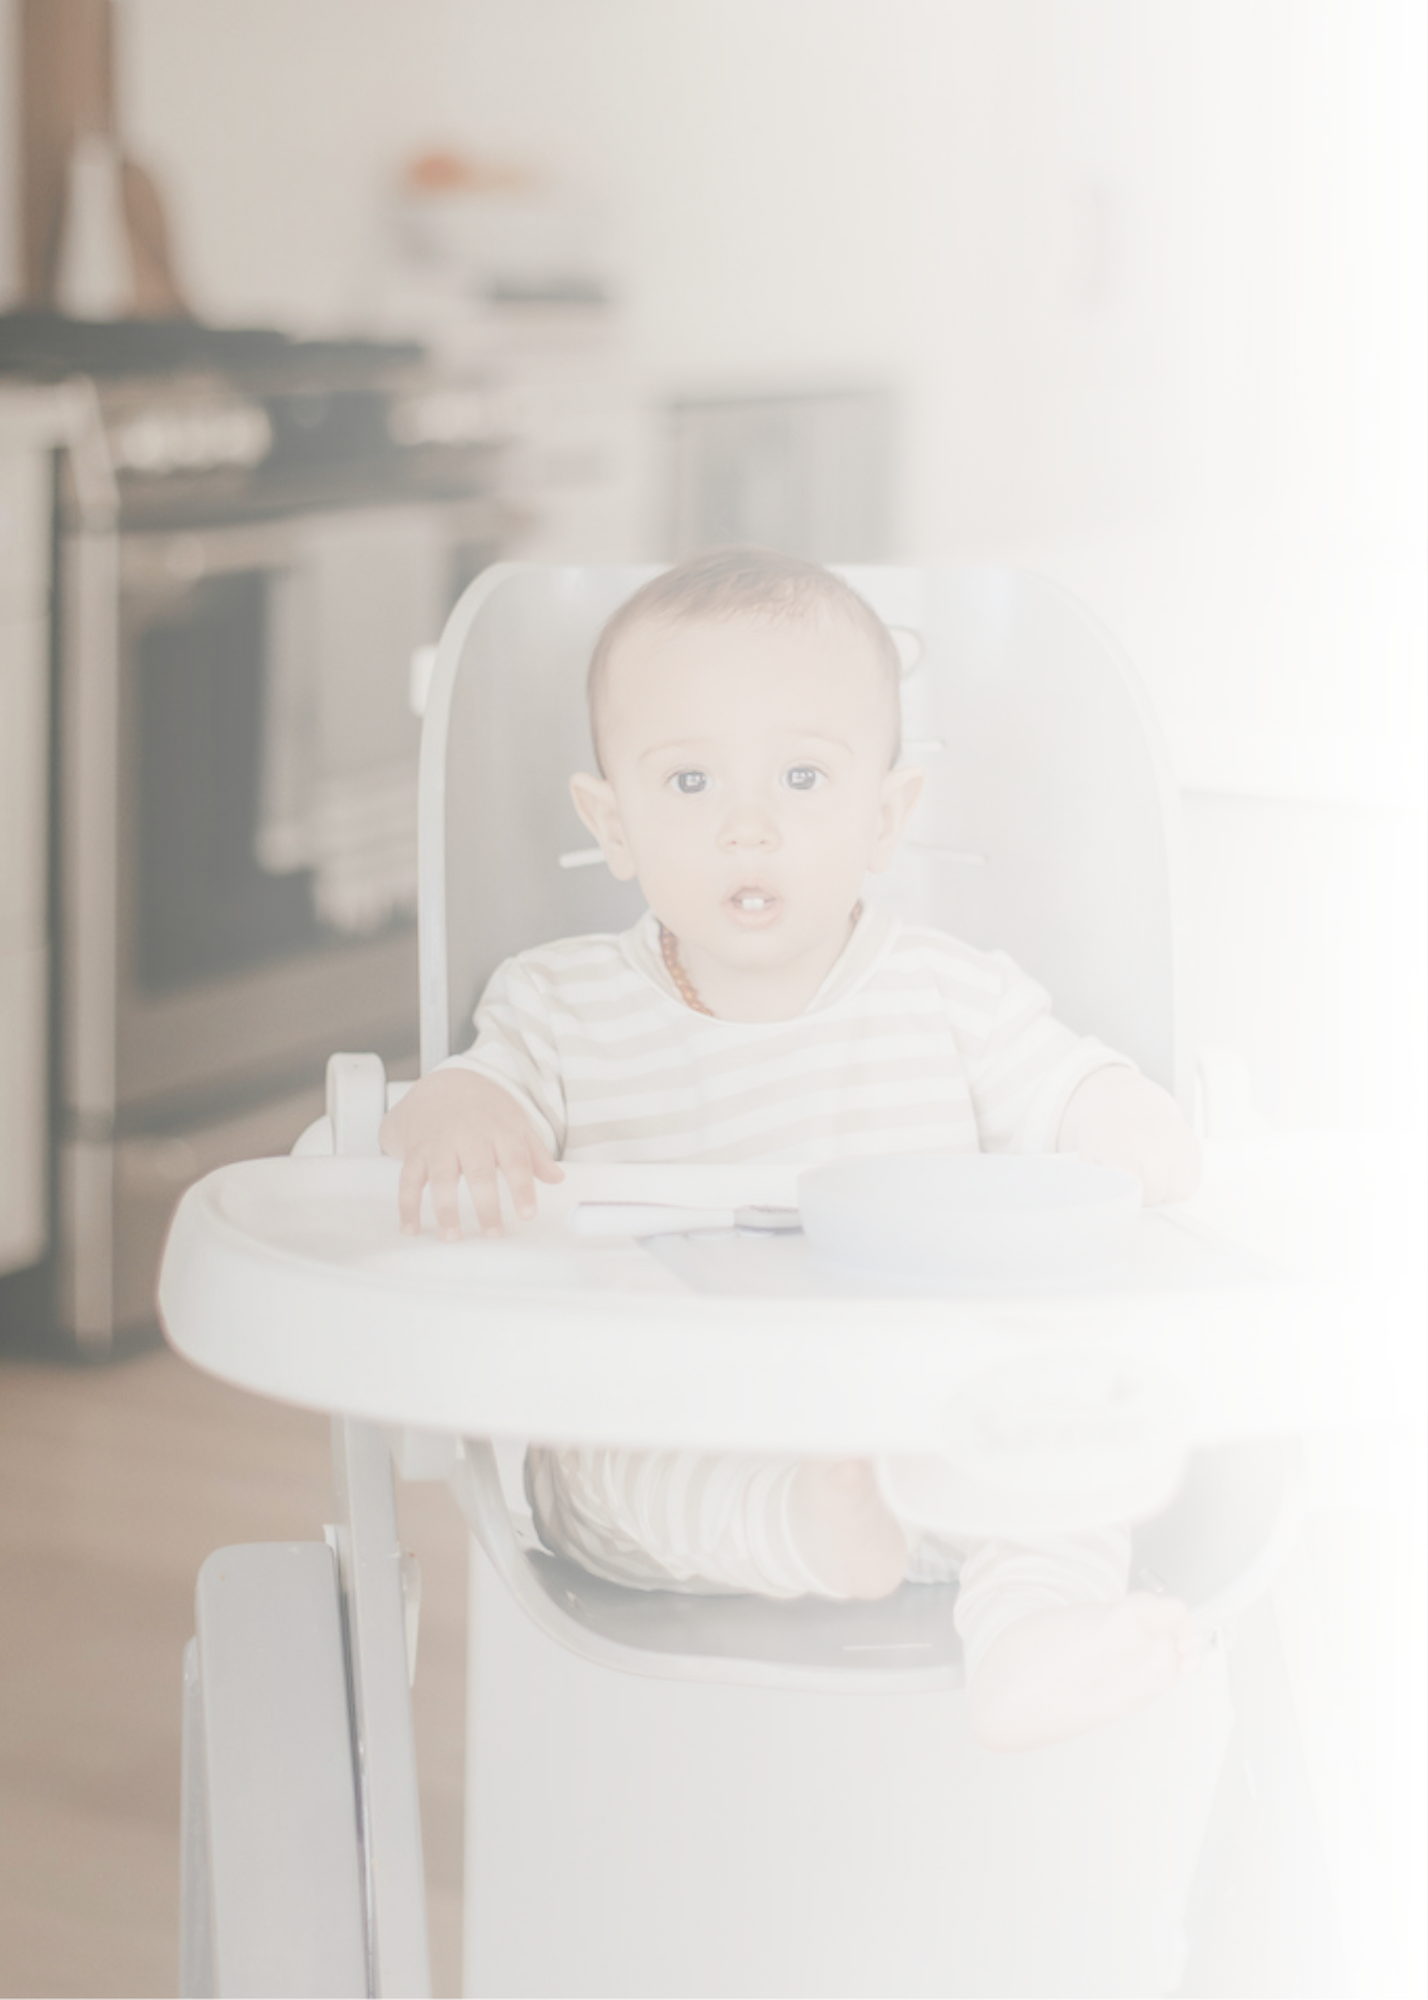 Infant in highchair waiting for introducing solids course